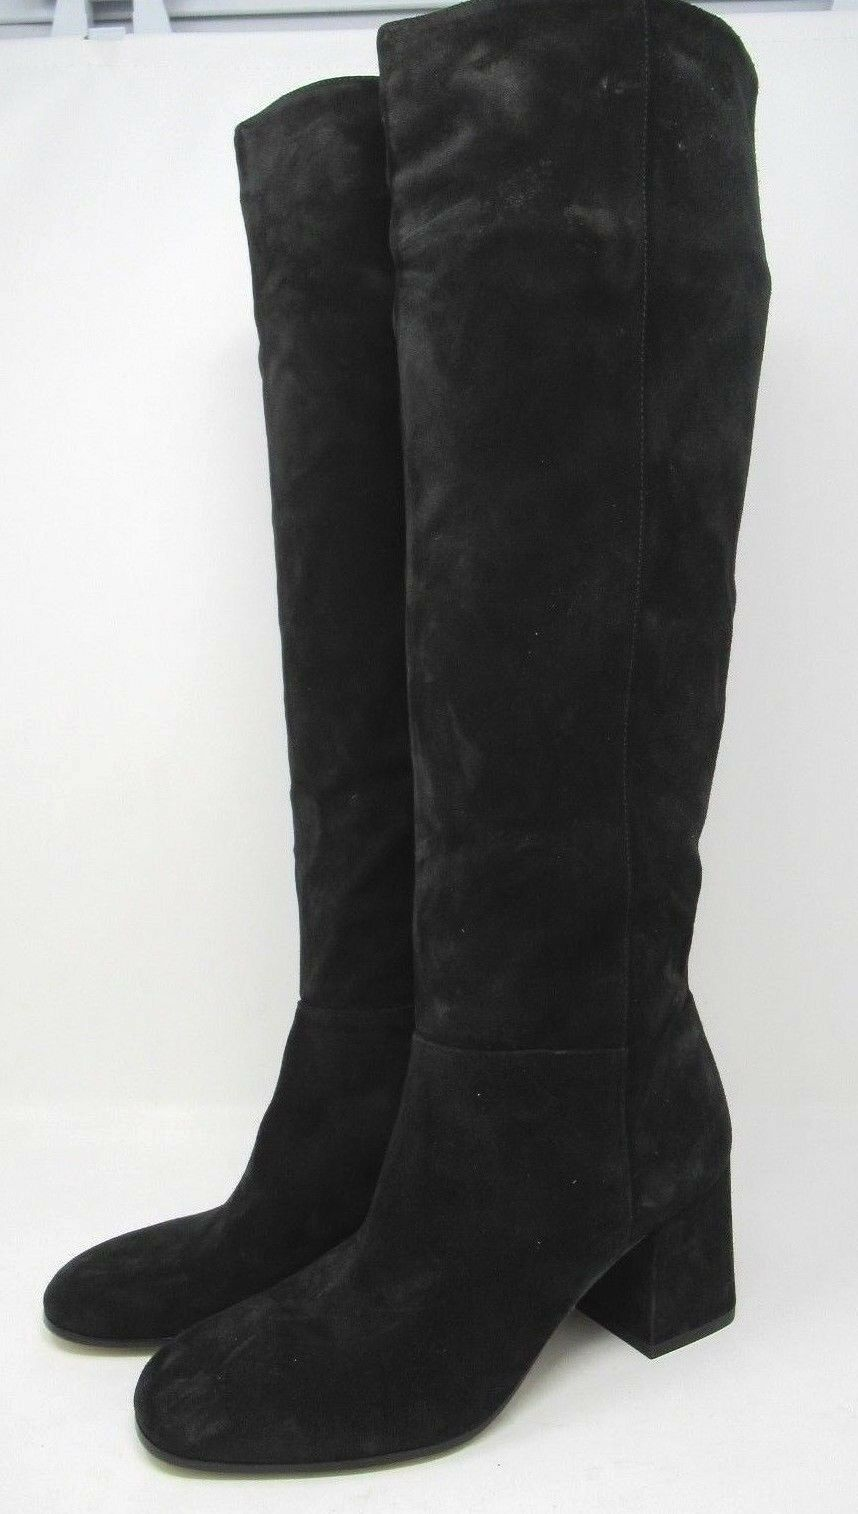 Via Spiga Women's  Nigel  Suede Block Heel Boots Black - 7 NEW